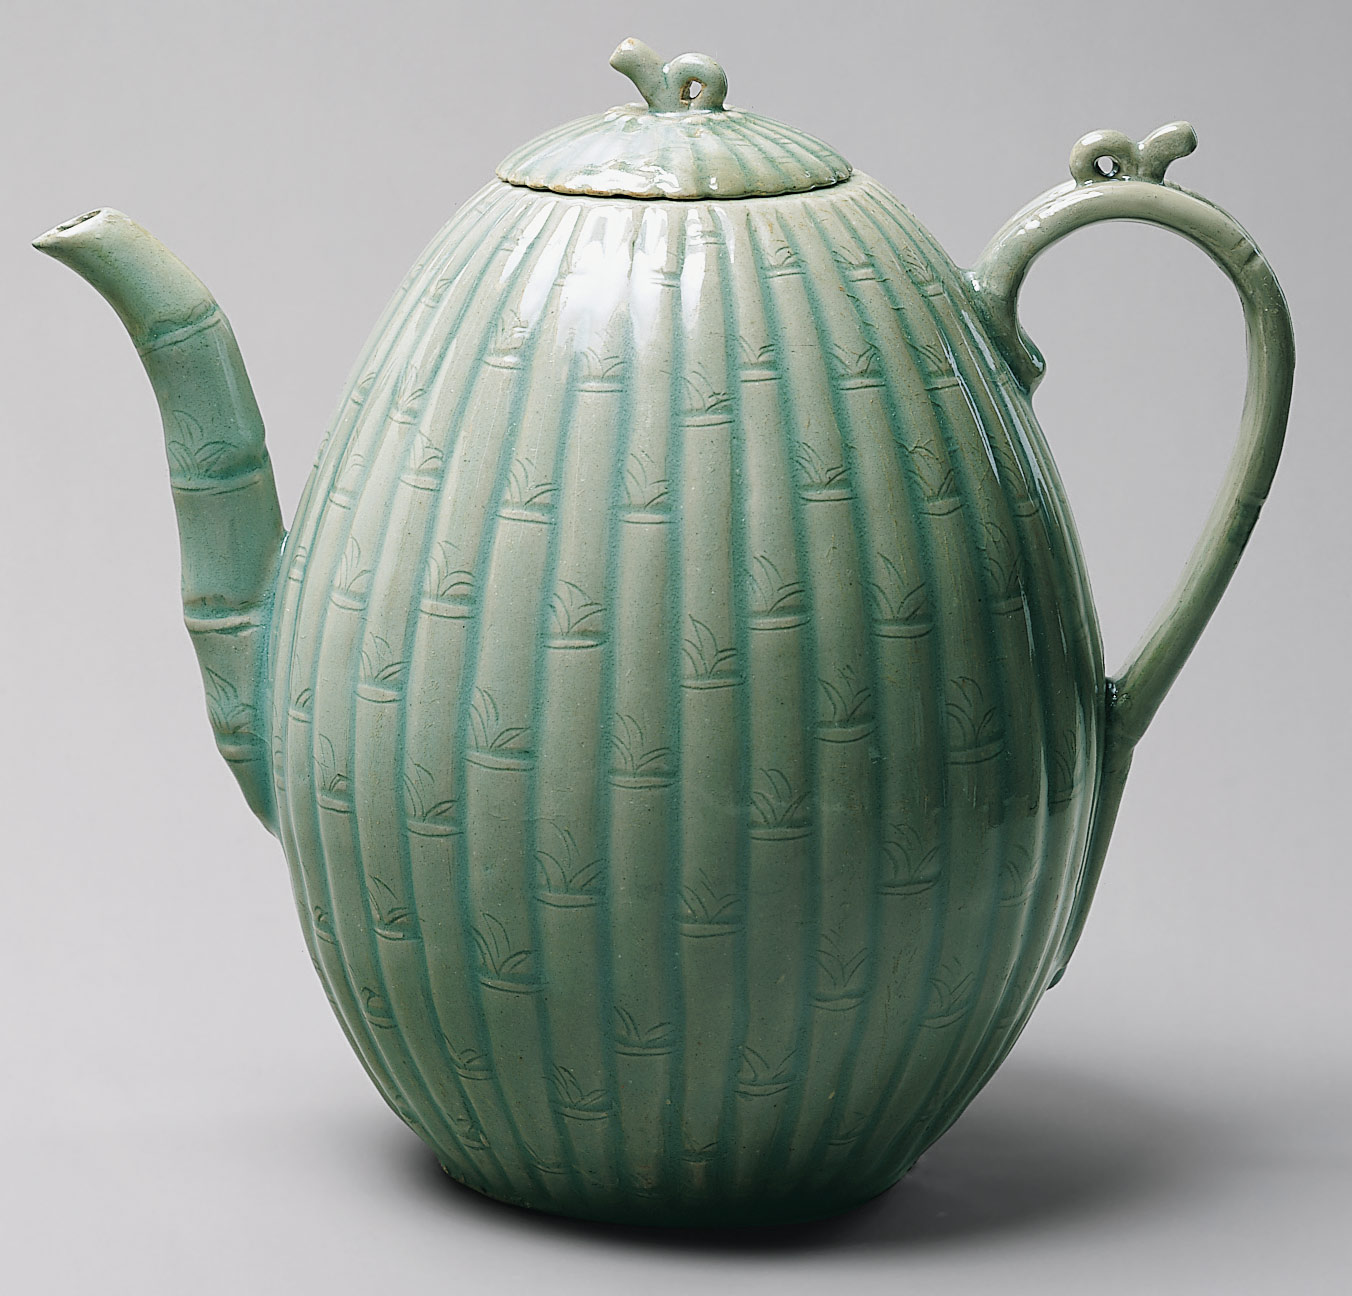 Korean Pottery And Porcelain